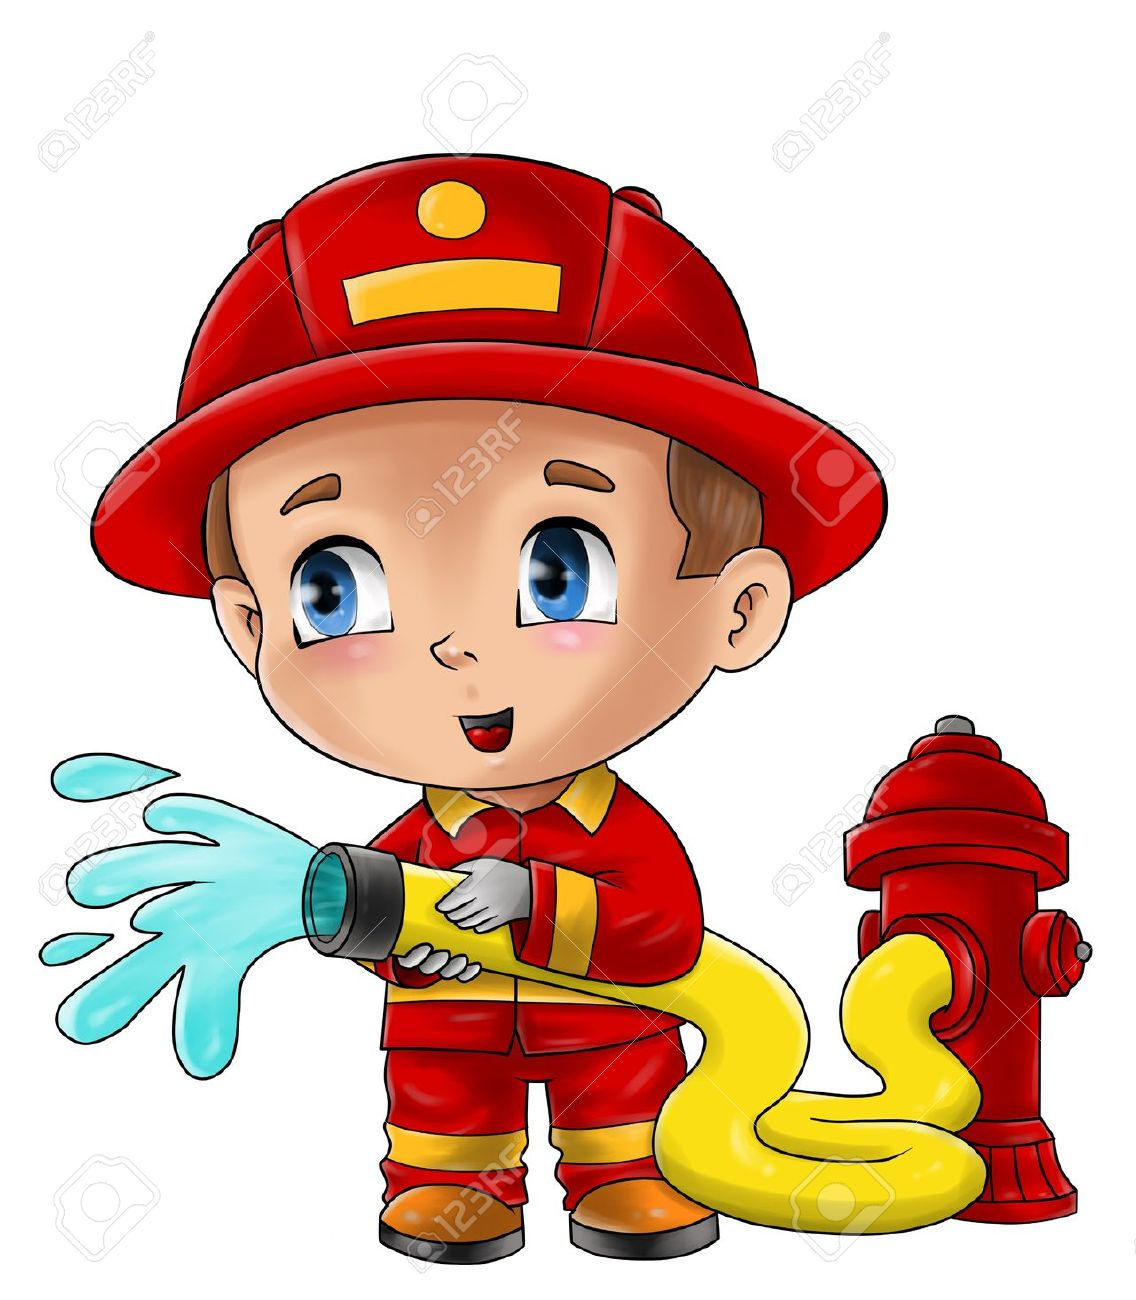 1136x1300 Cute Cartoon Illustration Of A Fireman Stock Photo, Picture